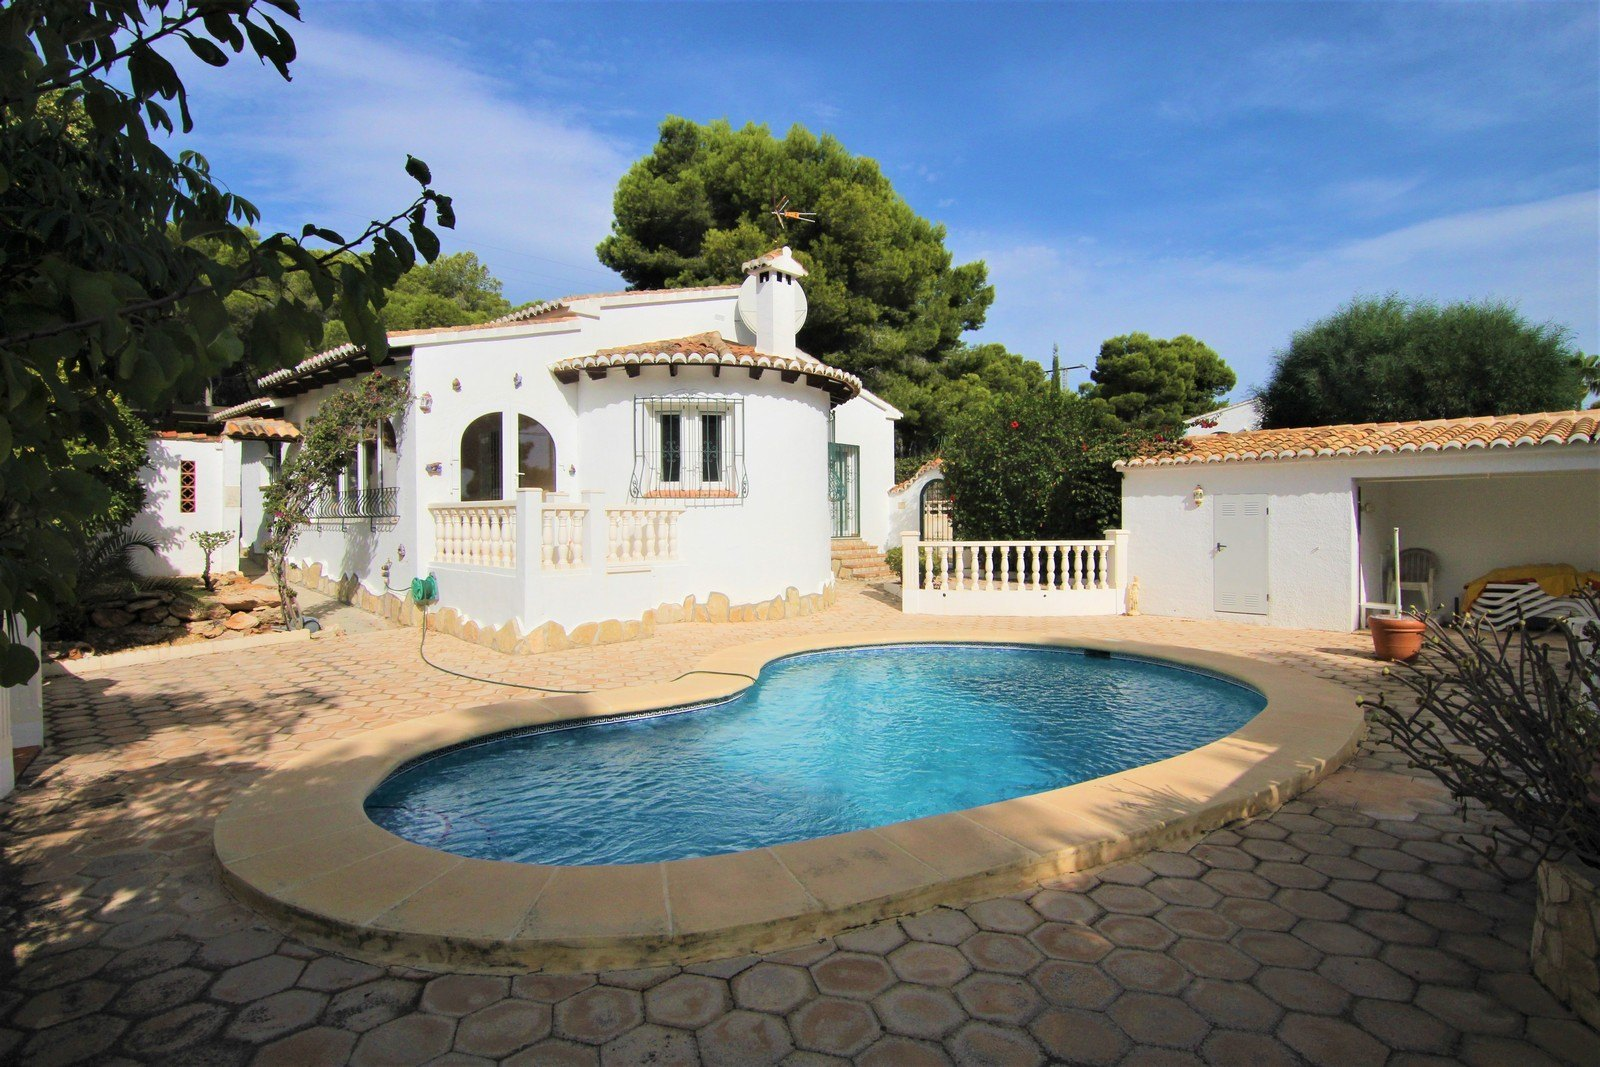 Villa with heated pool and flat plot near the village.